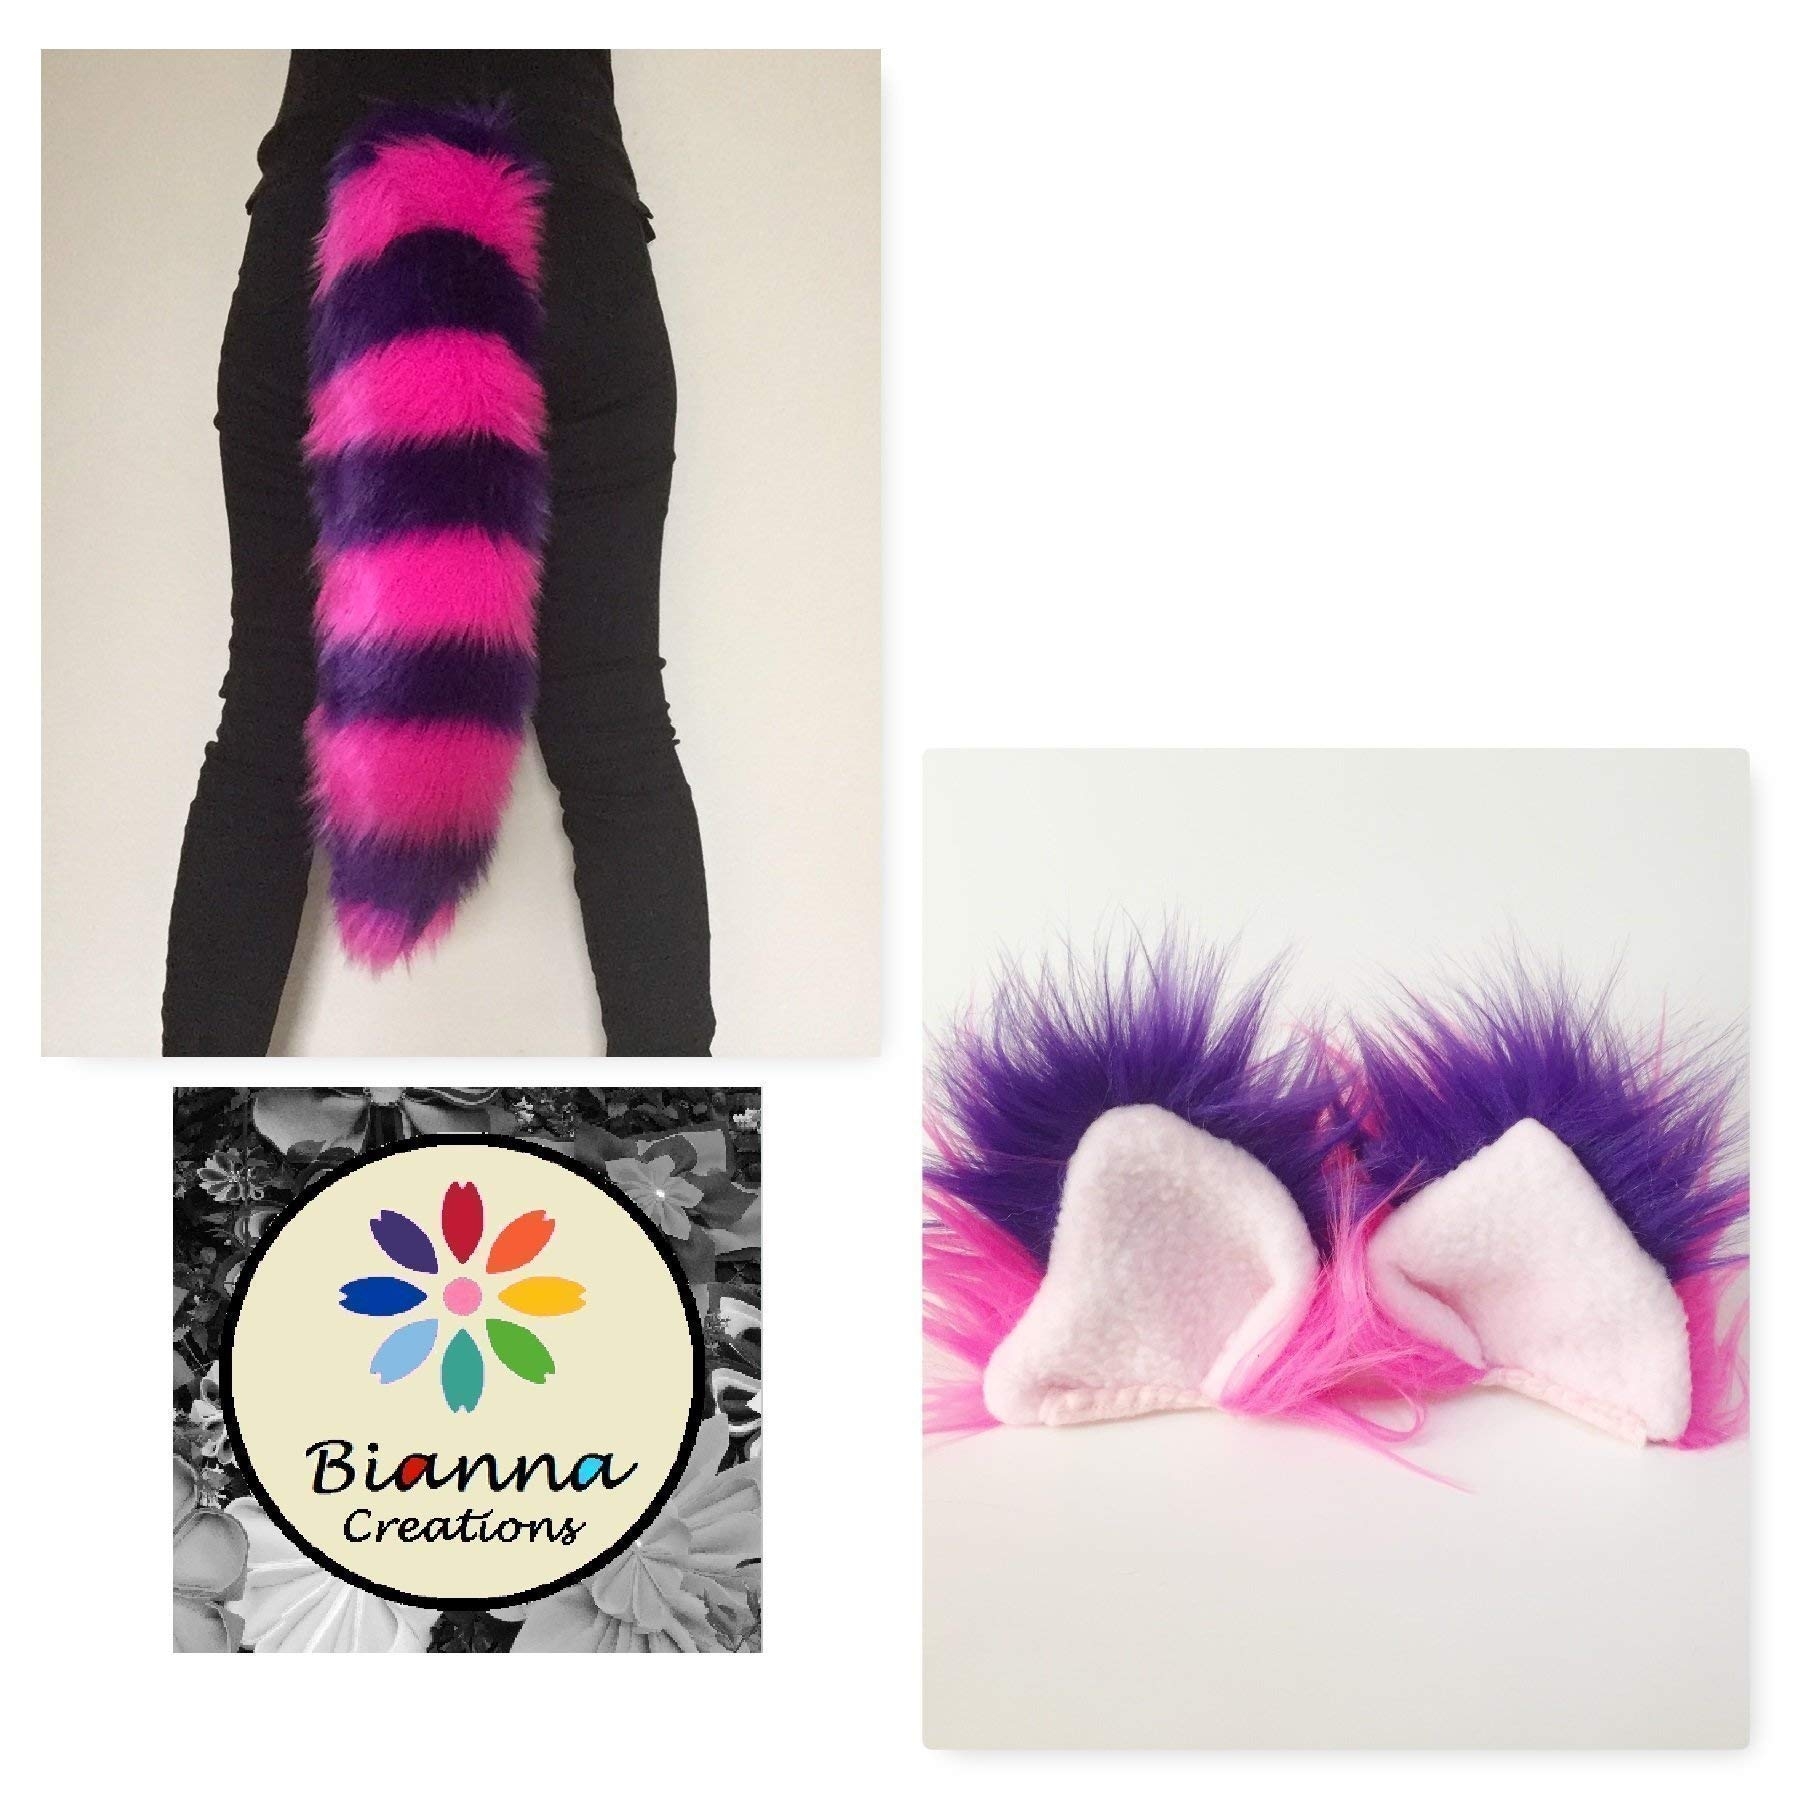 Thin Striped Hot Pink and Purple Cheshire Cat Luxury Costume Set, You choose Tail size, Ears or both, Super Soft Faux Fur, Bianna Creations Handmade, Halloween Costume Accessory